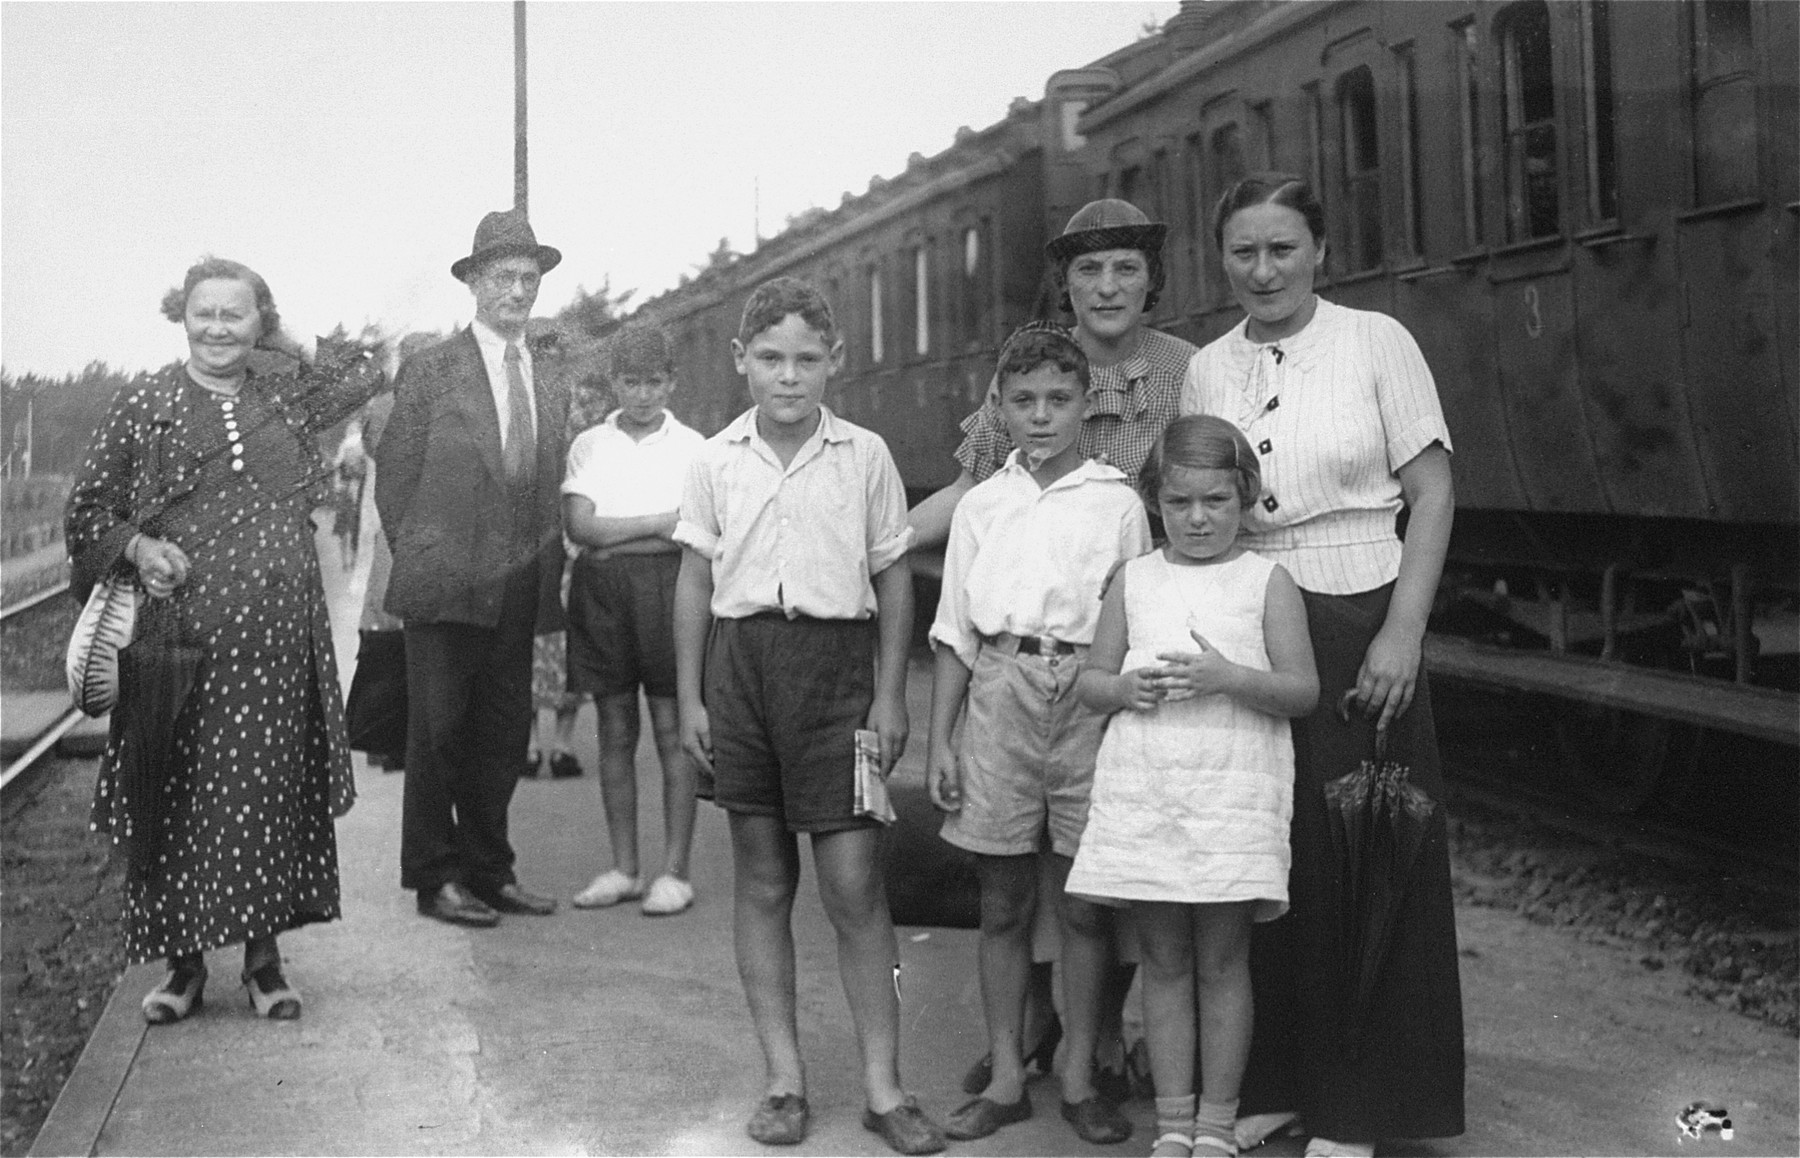 A Jewish family poses at a train station in Riga.  Among those pictured are Debora Nurock and Chassia Rosenthal.